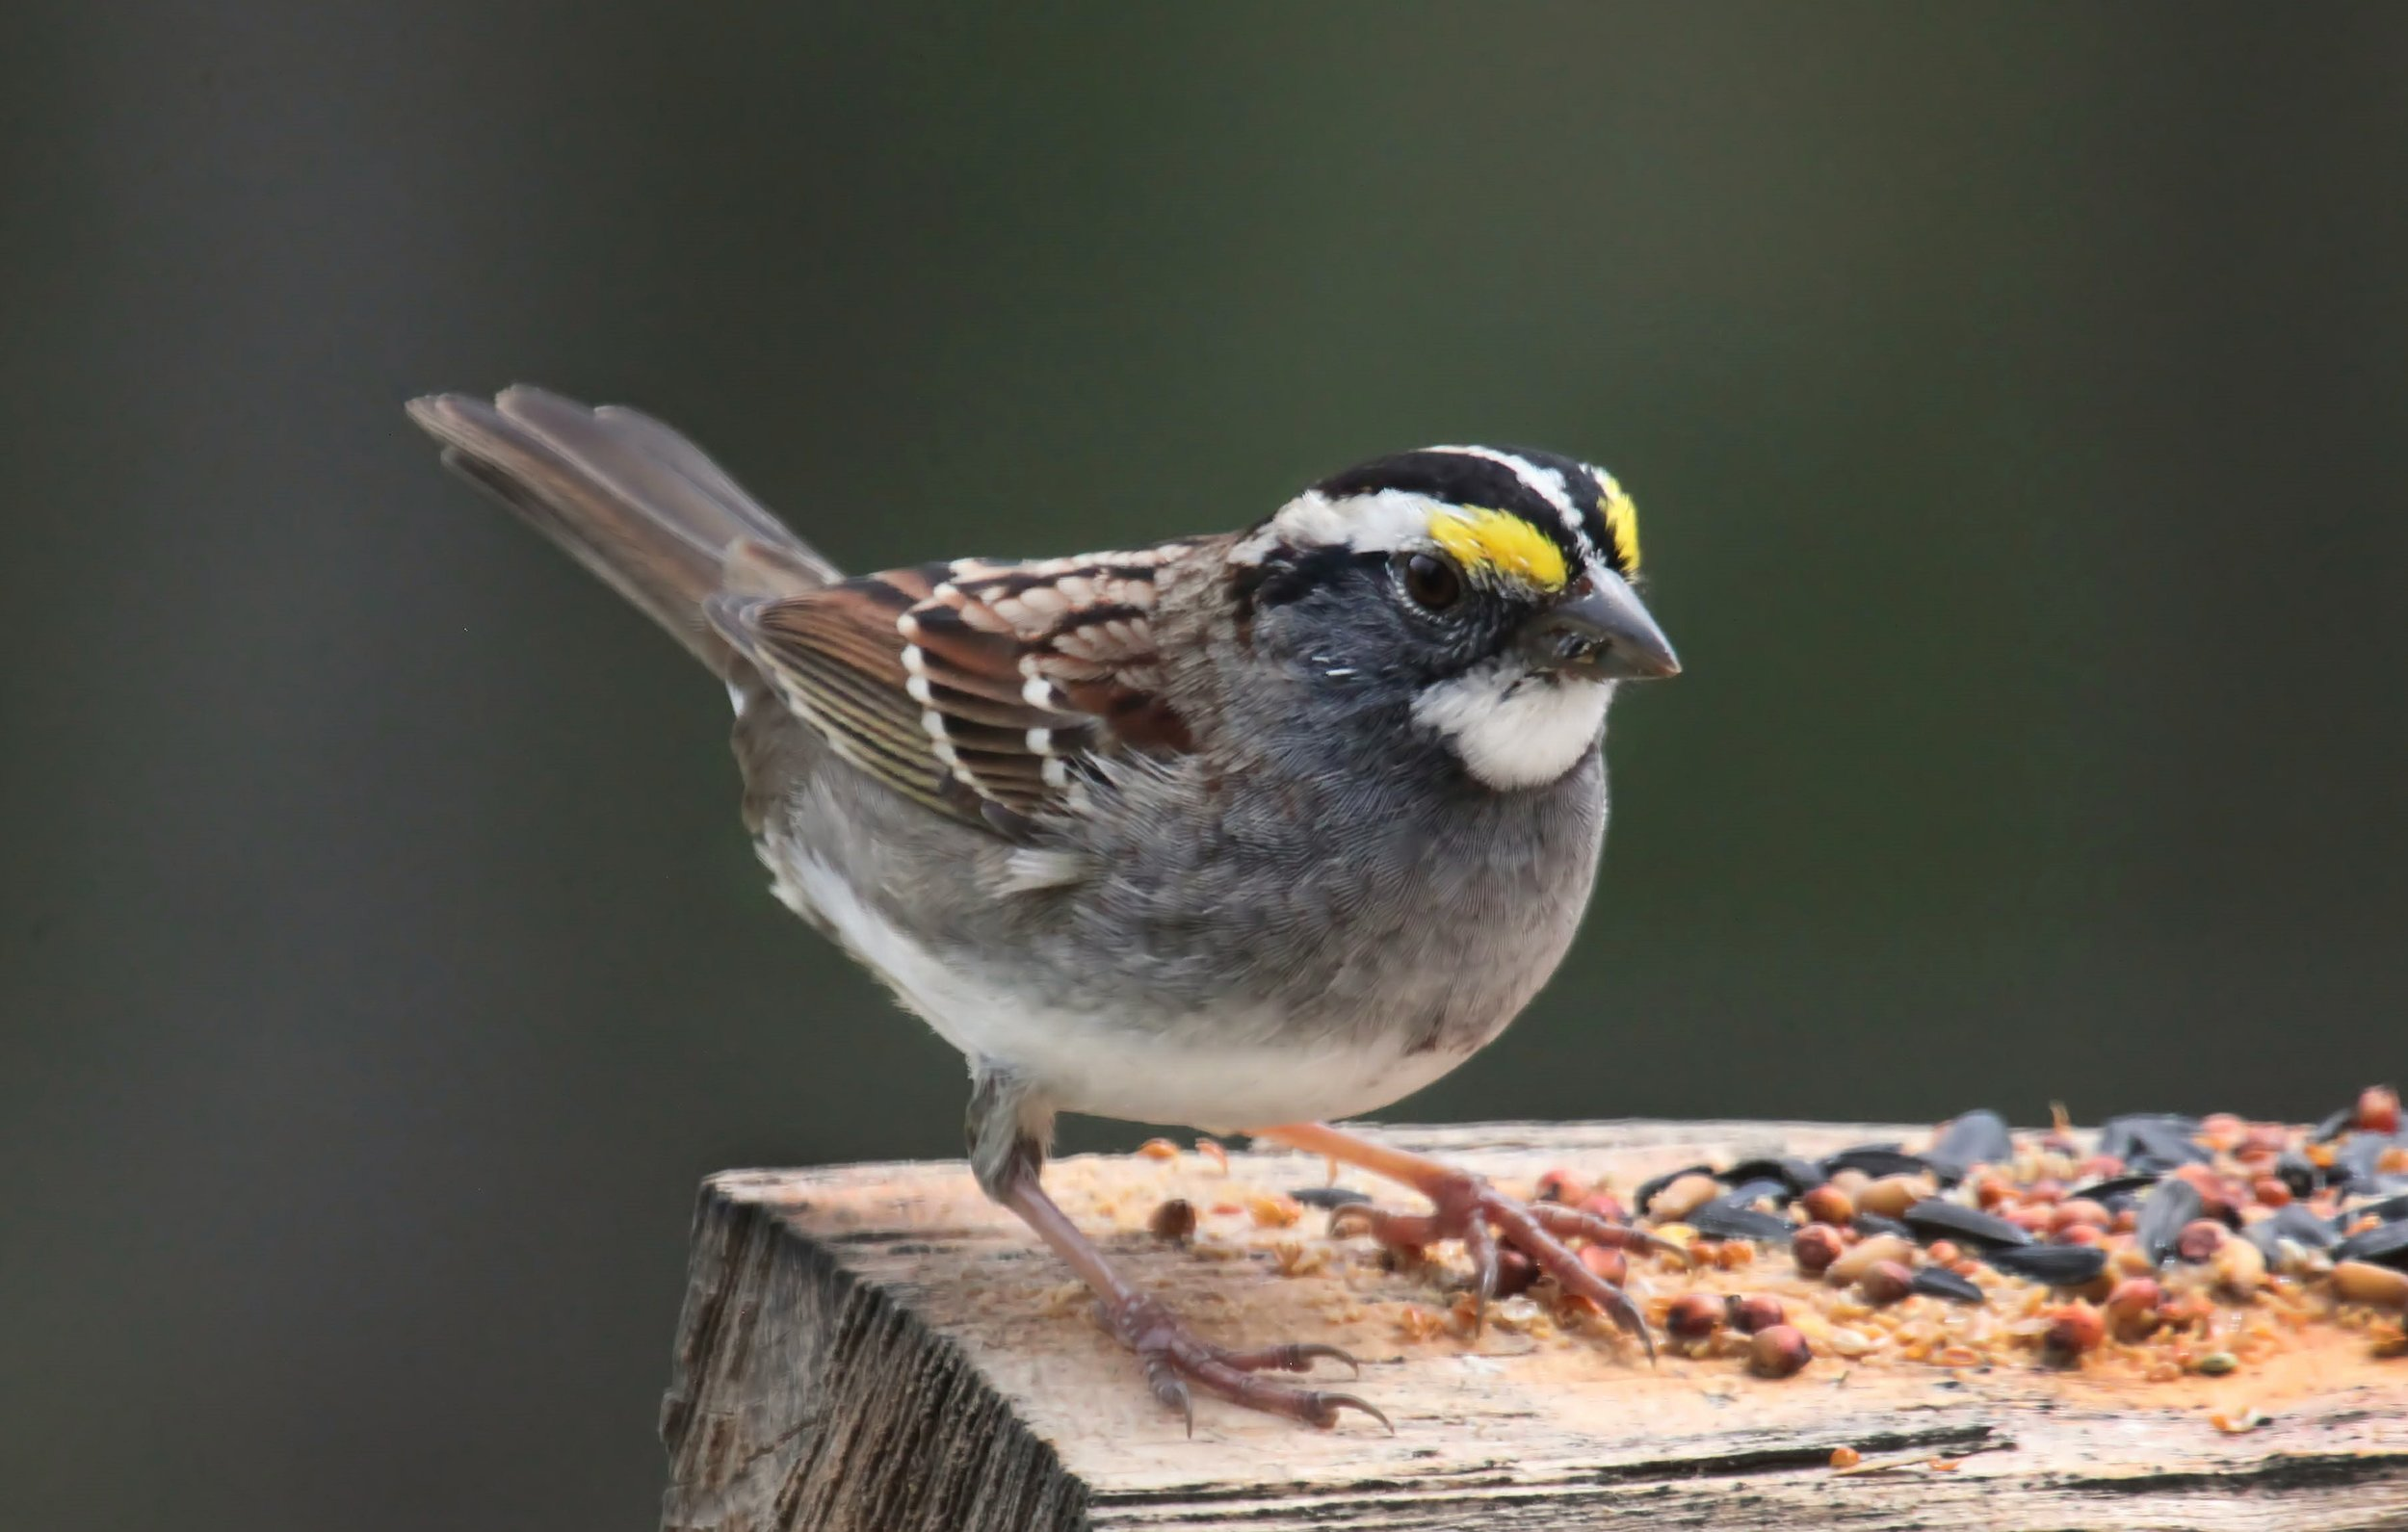 """- White-throated Sparrow (Zonotrichia albicollis)White-throated Sparrows live in deciduous and coniferous forests. Their diet consists of seeds, insects, and berries. They weigh 0.8-1.1 oz. and have a 7.9-9.1 in. wingspan. White-throated Sparrows sing """"Oh-Canada-Canada-Canada-Canada."""" They are protected on the US Migratory Bird list.Photo Credits: John Flannery"""